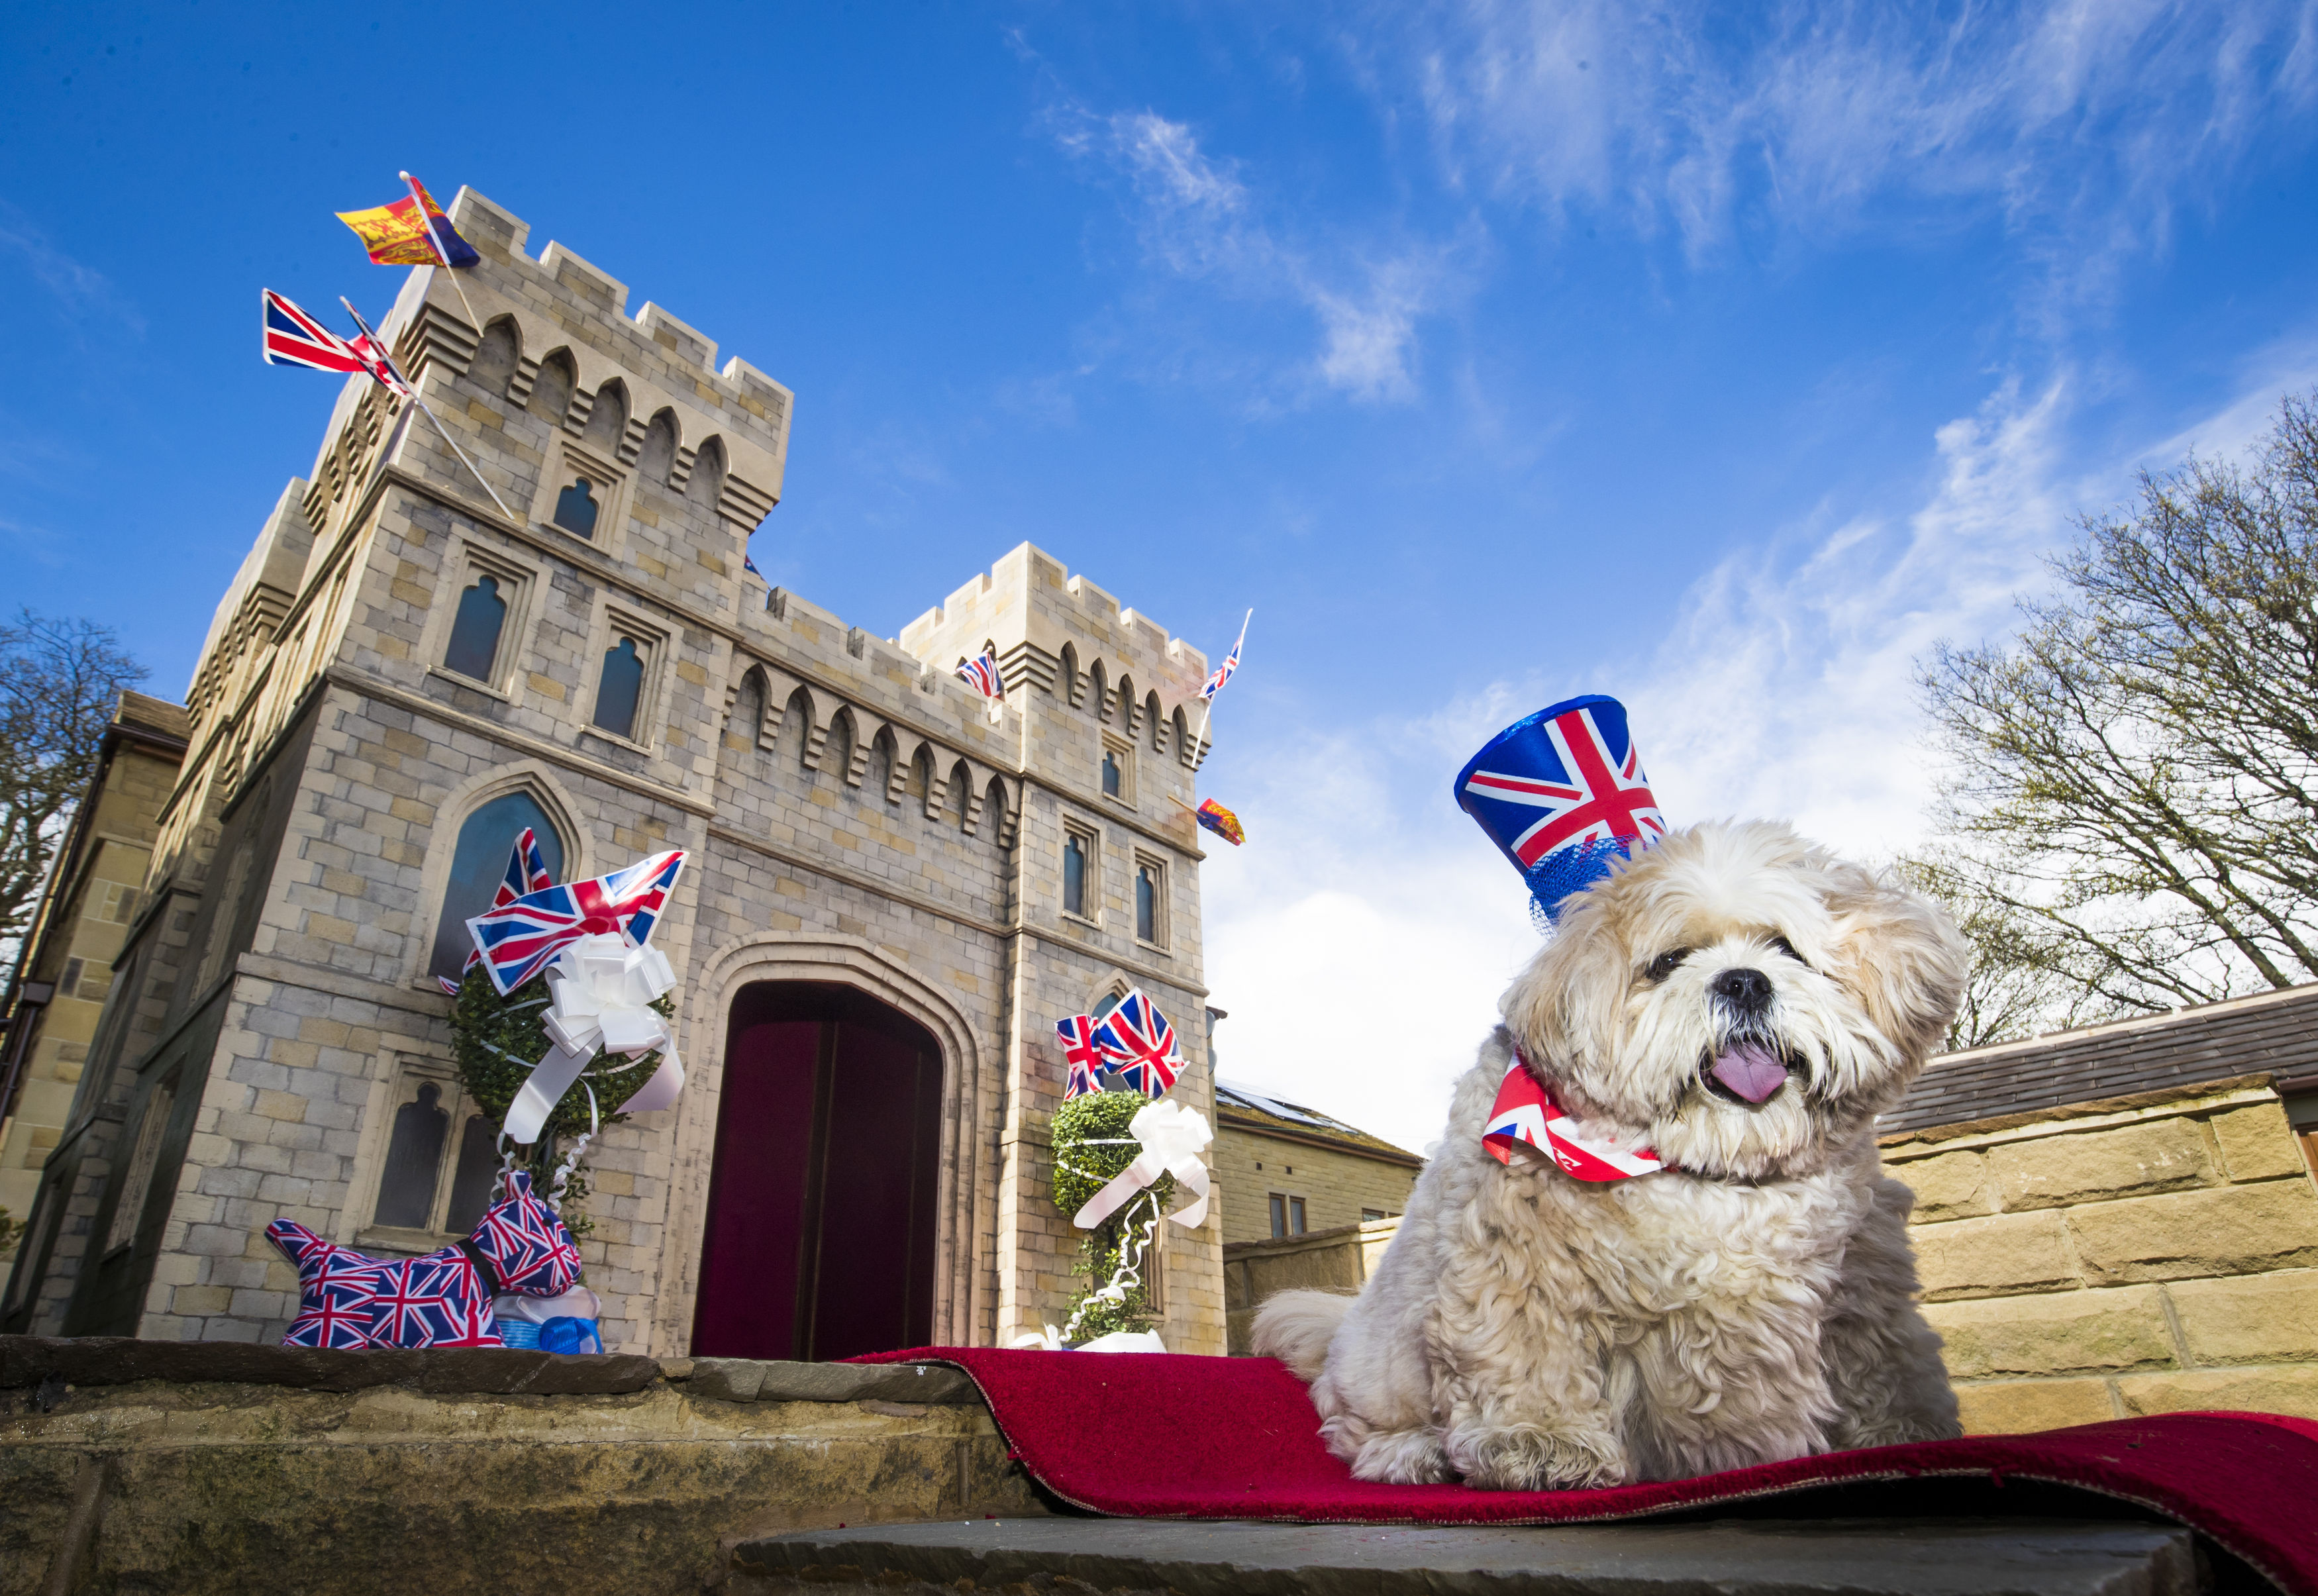 Archie the Lhasa Apso and his new kennel, a replica of Windsor Castle, which his owner Susan Crossland has installed at her home in Mirfield, West Yorkshire.